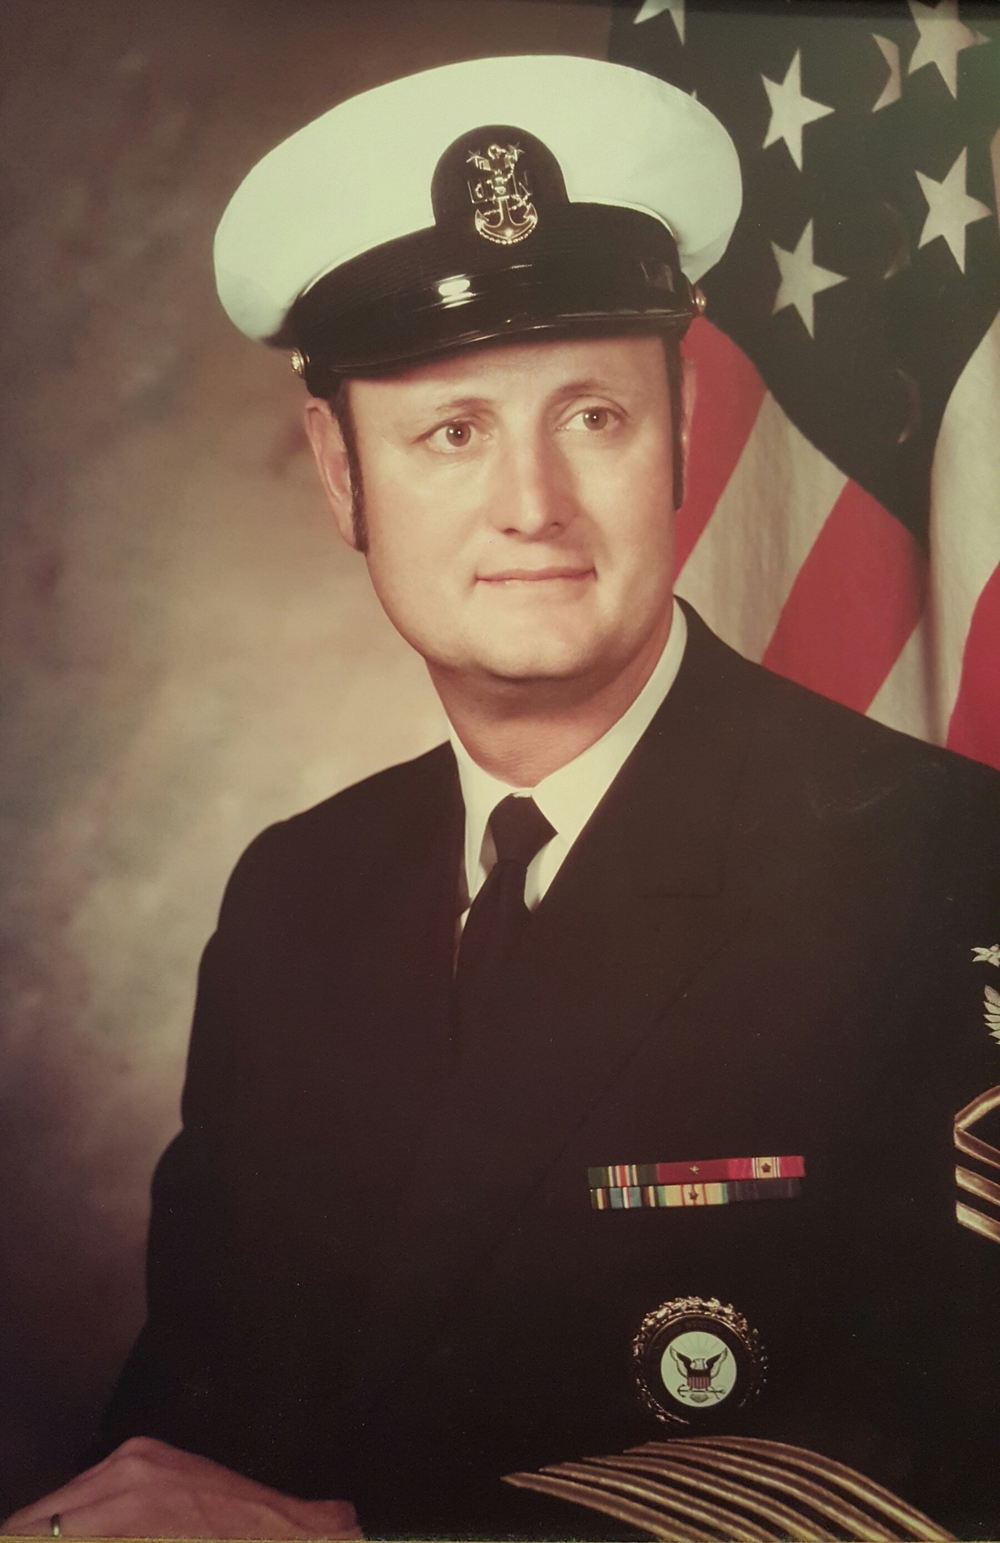 Dracon, during his navy Career